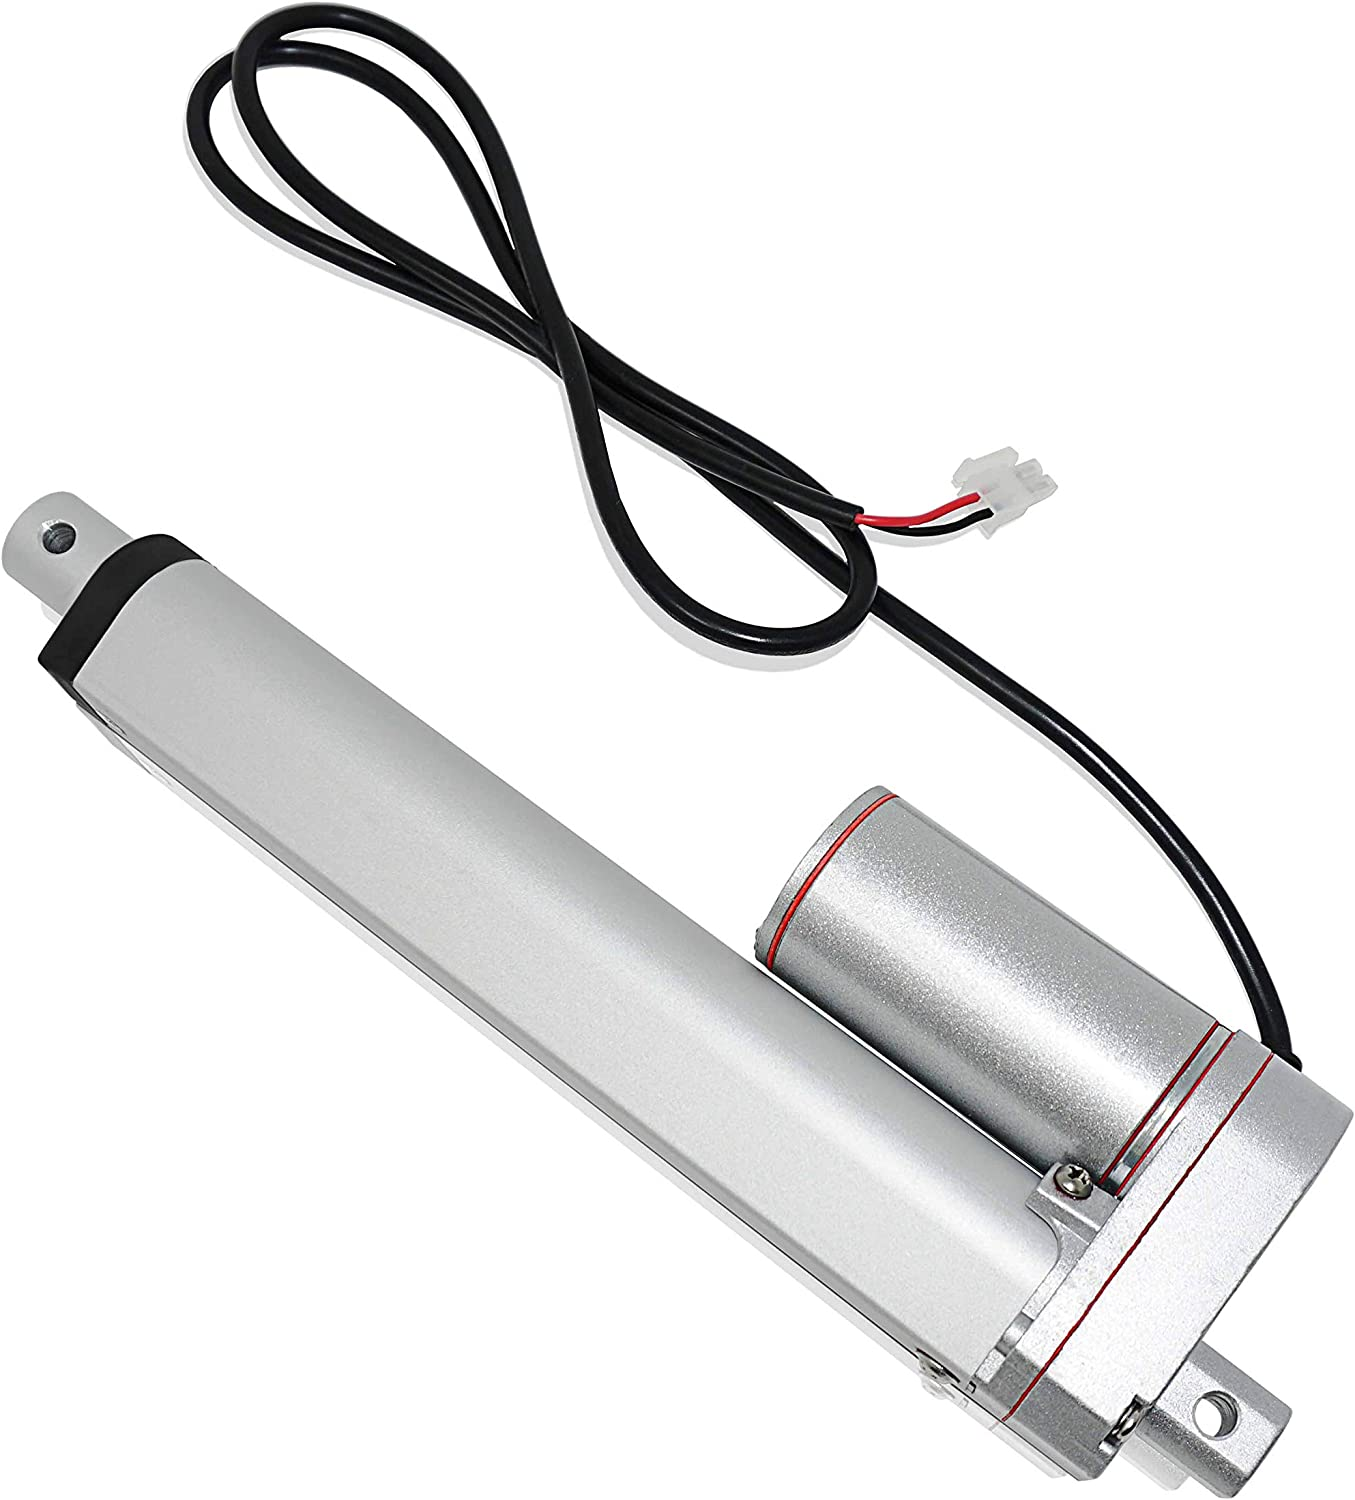 Home Automation Mini Linear Electric Actuator 12V Model: PA-14-9-35 for Outdoor | Innovative High-Speed Motor and Durable Stroke 9, 35 lbs. Robotics Track Solar Agriculture